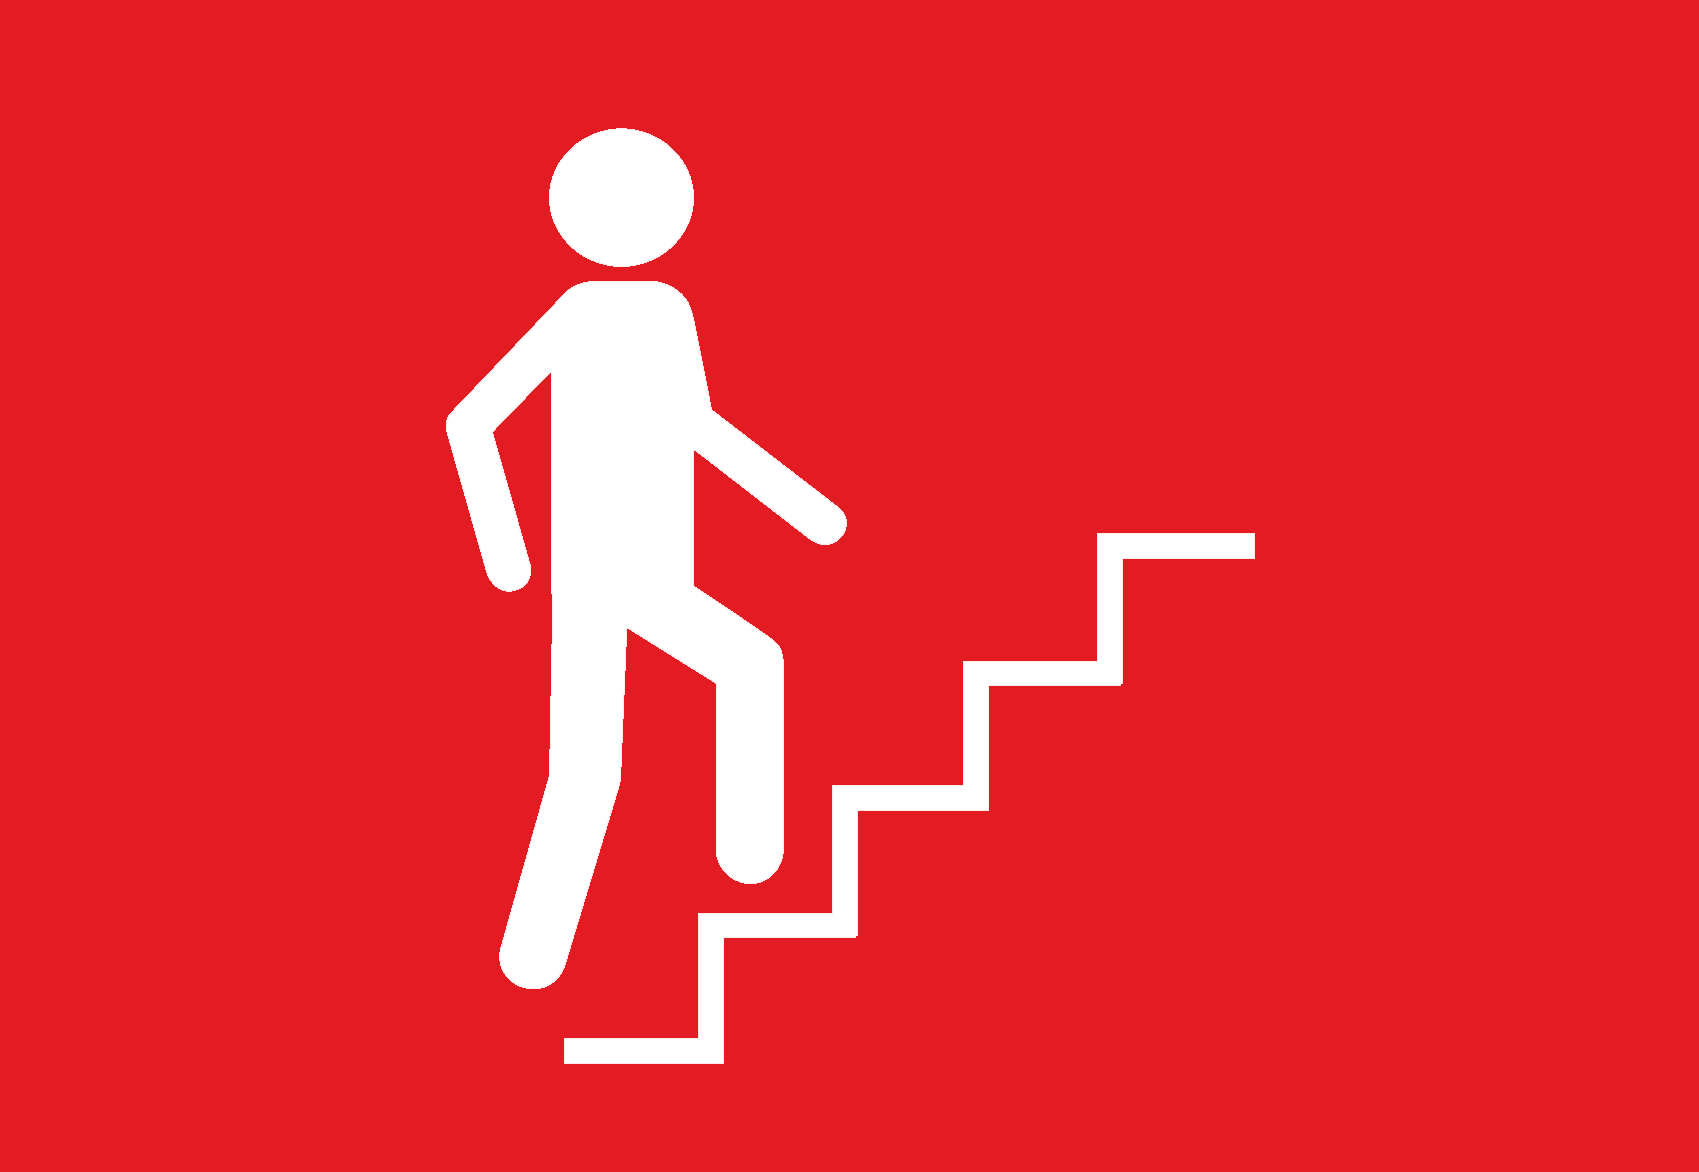 Take the Stairs — Get Healthy Now for Climbing Stairs To Success  568zmd